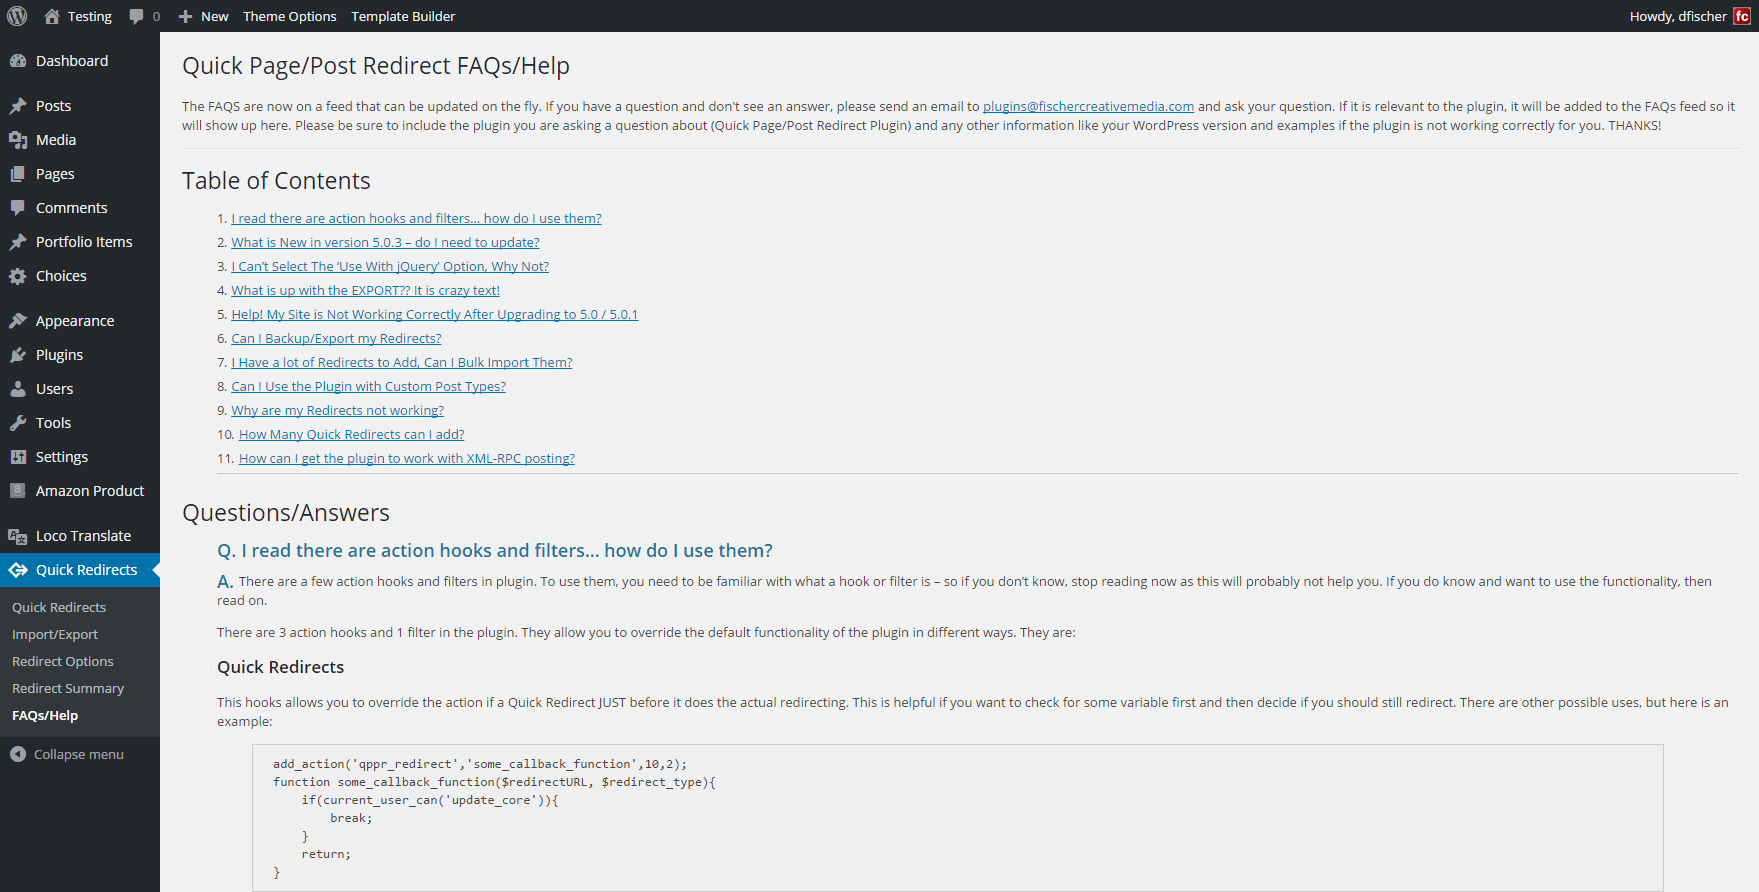 FAQs/Help Page. This is updated via an RSS feed so it can be updated regularly with fixes and common questions.